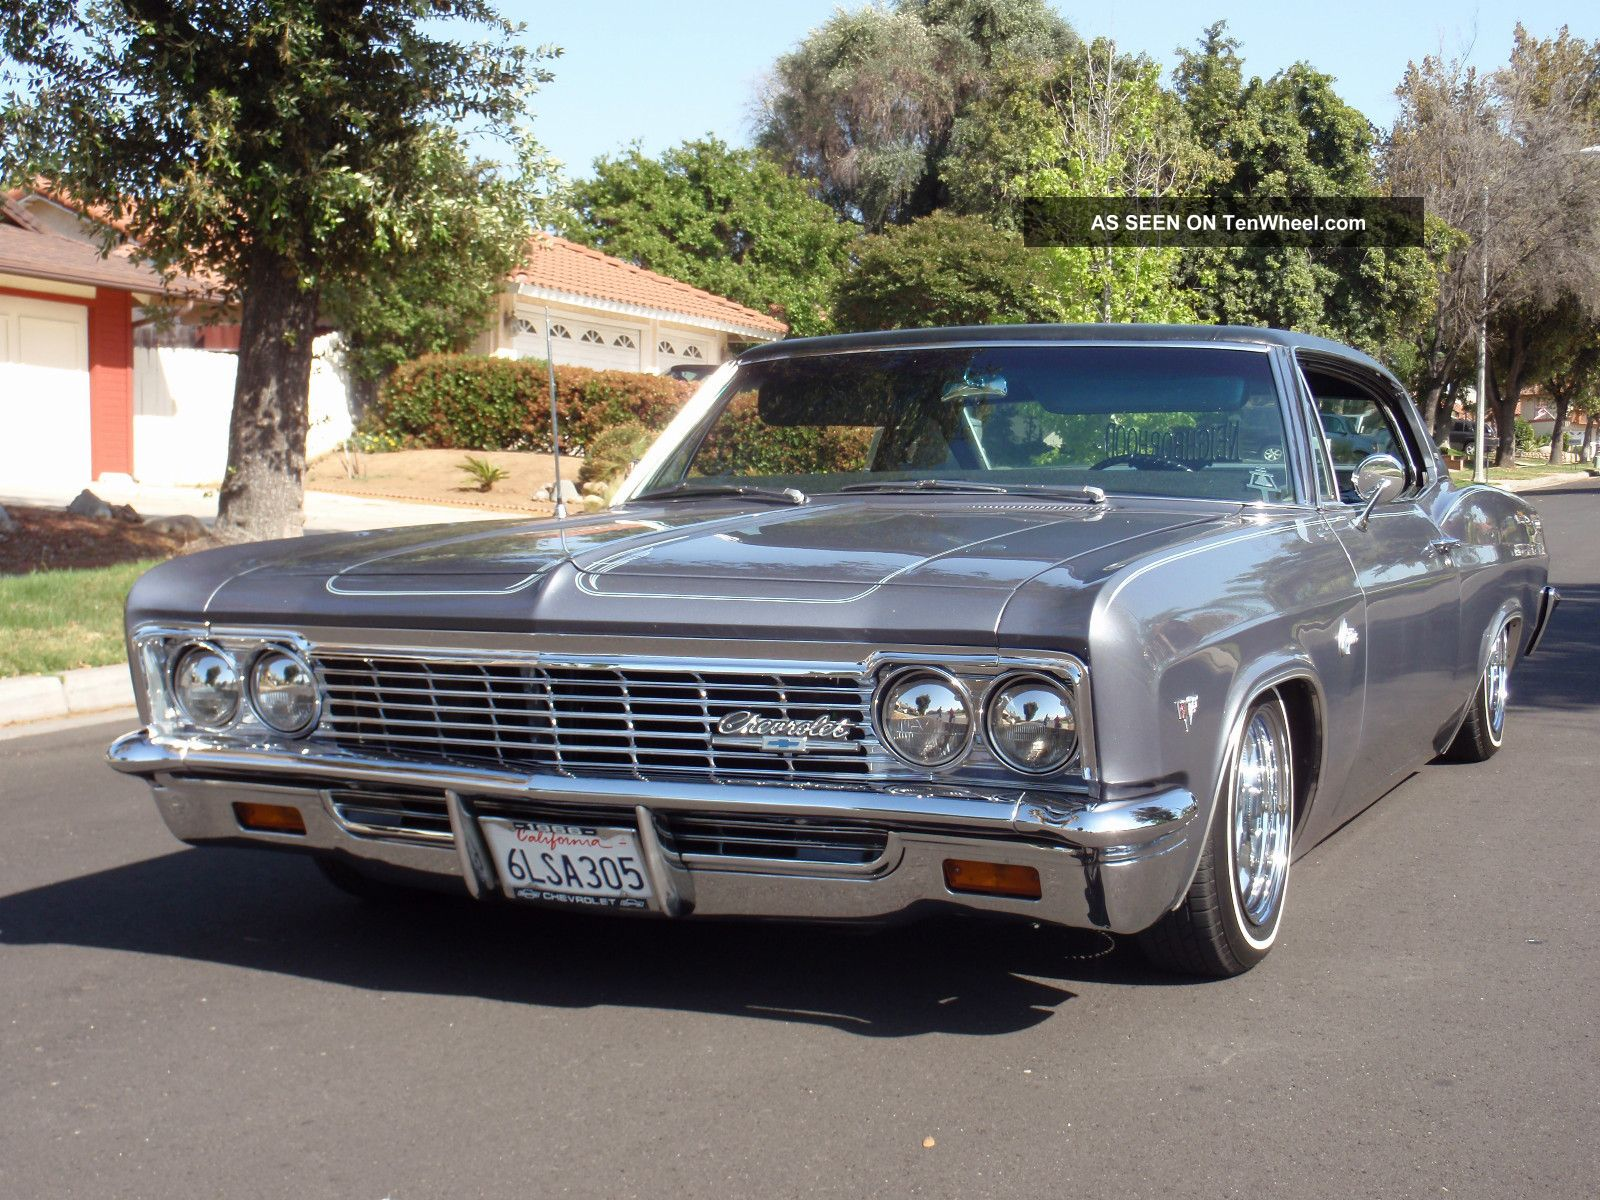 1966 Chevy Impala Caprice Bel Air West Coast Lowrider Wire Harness Kit